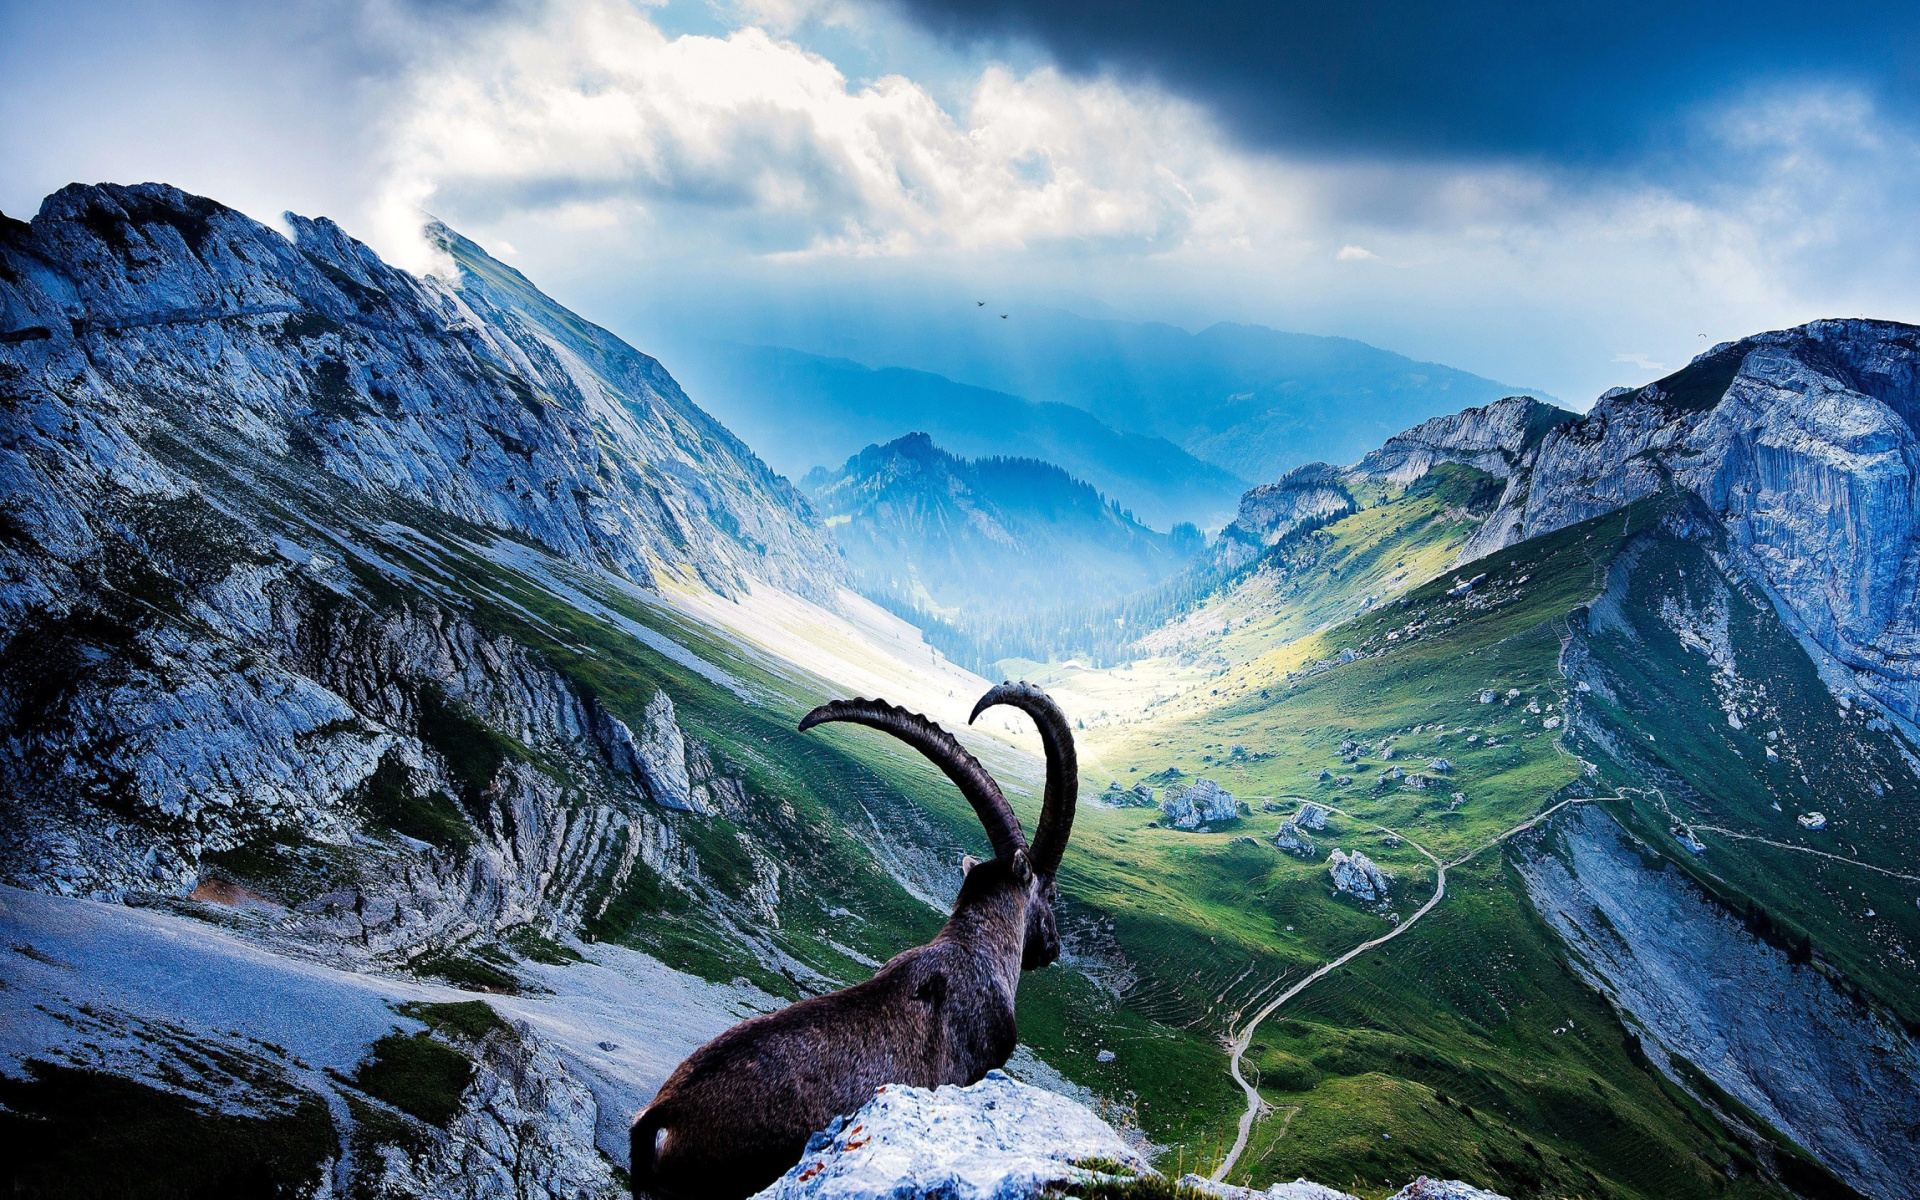 Wallpapers Wide Hd Collections: Mountains And Mountain Goat Wallpaper For Widescreen